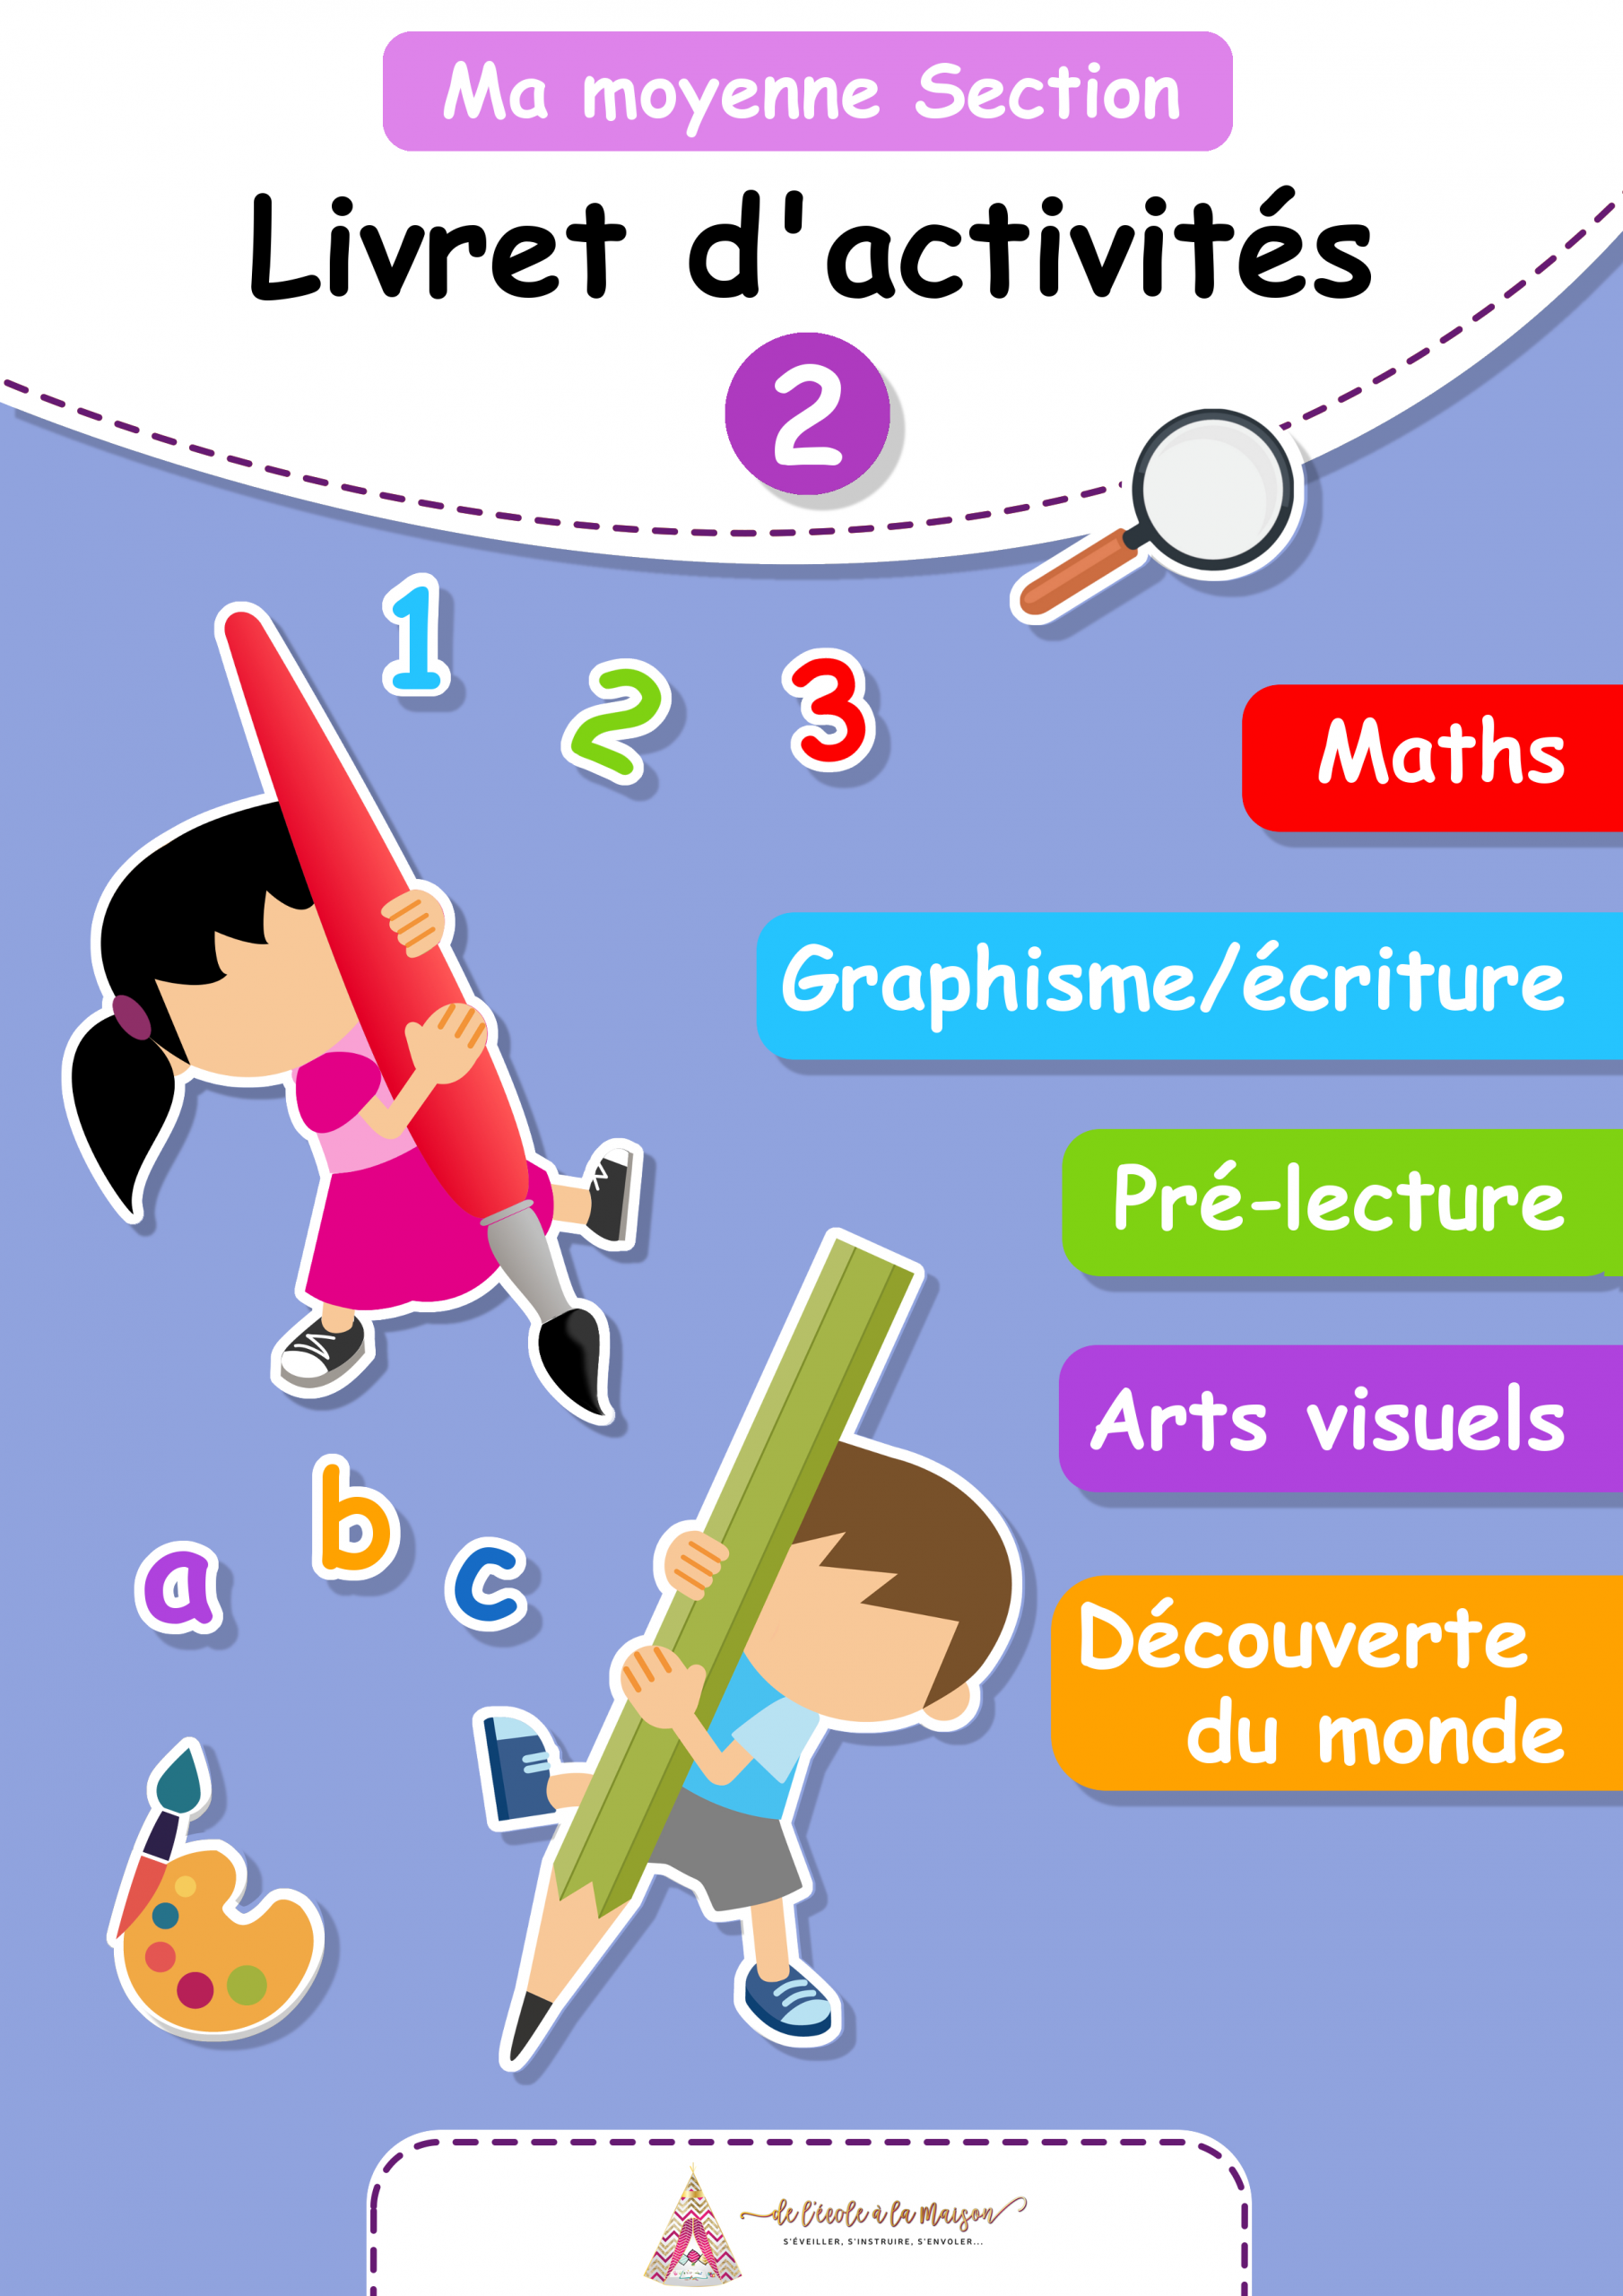 Pack Moyenne Section De Maternelle concernant Exercice Maternelle Petite Section